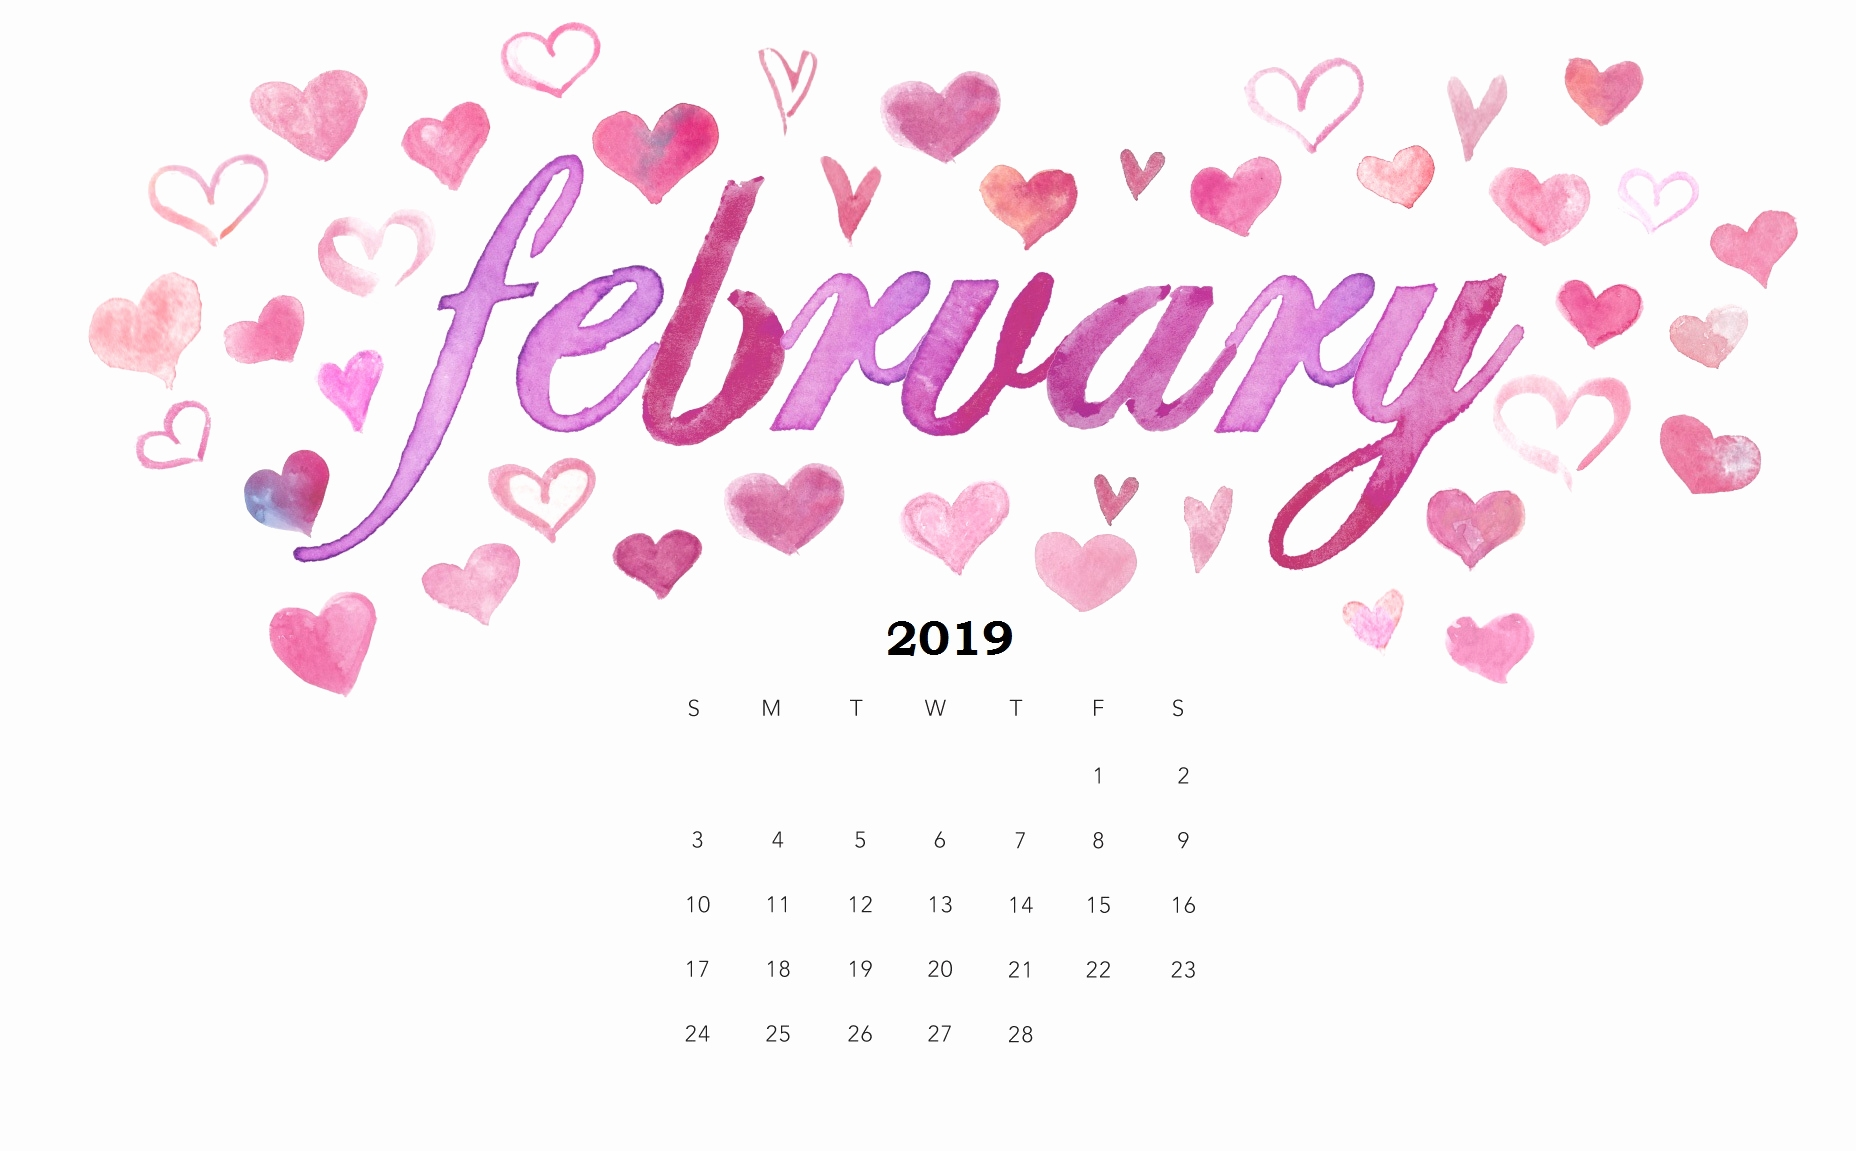 calendar february 2019 wallpaper february 2019 calendar wallpapers::February 2019 iPhone Calendar Wallpaper